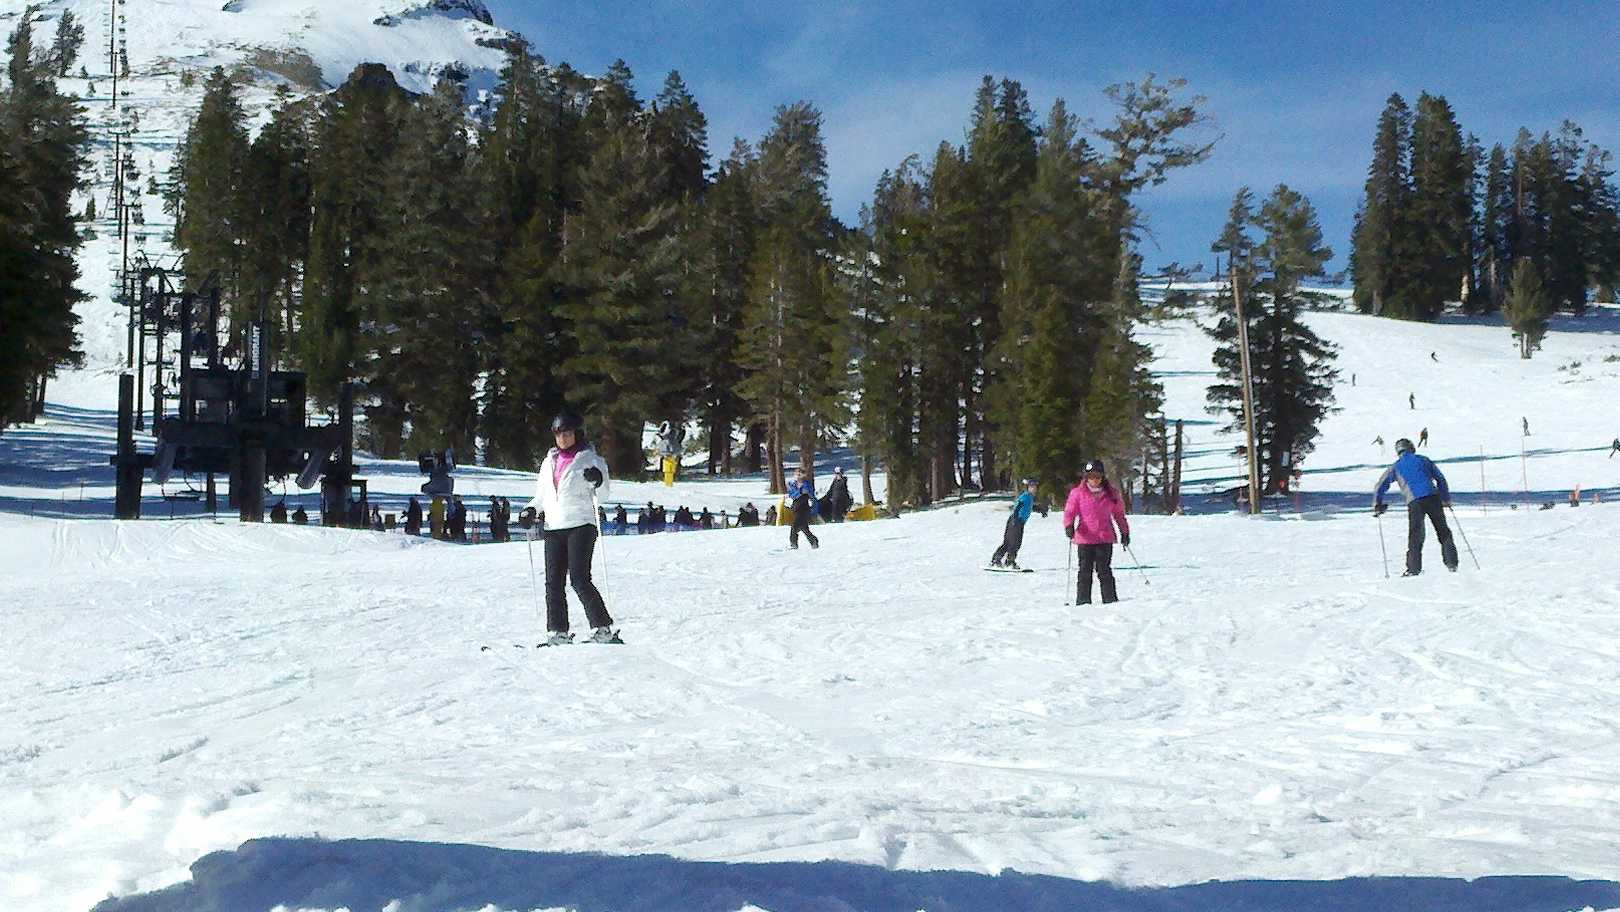 squaw valley black dating site Resort at squaw creek view all hotels in squaw valley resort at squaw creek 40 squaw valley black bears have become a persistent problem around lake tahoe.